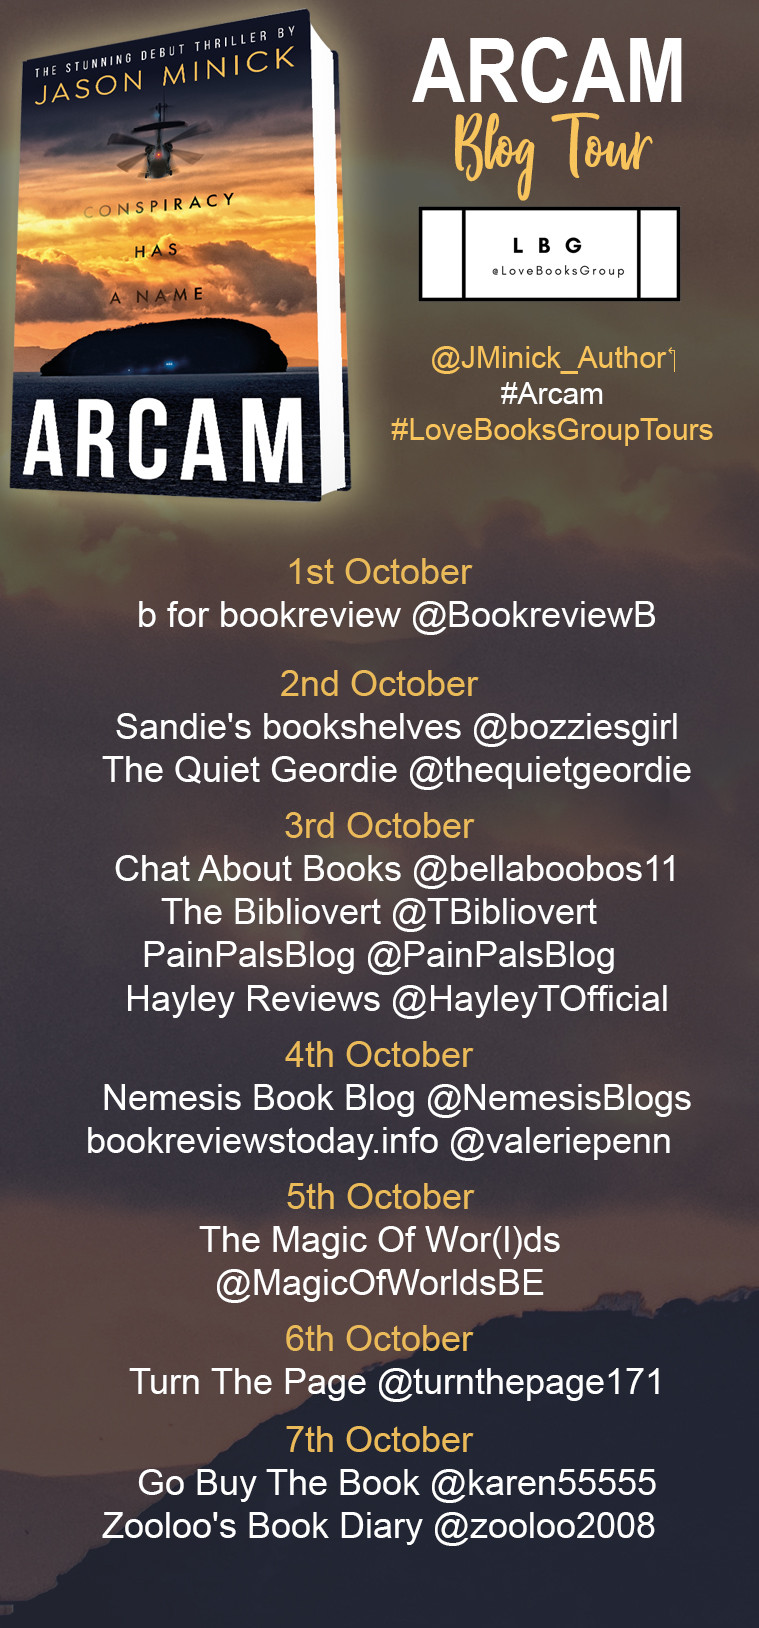 ARCAM Blog Tour, courtesy of Love-Books-Group